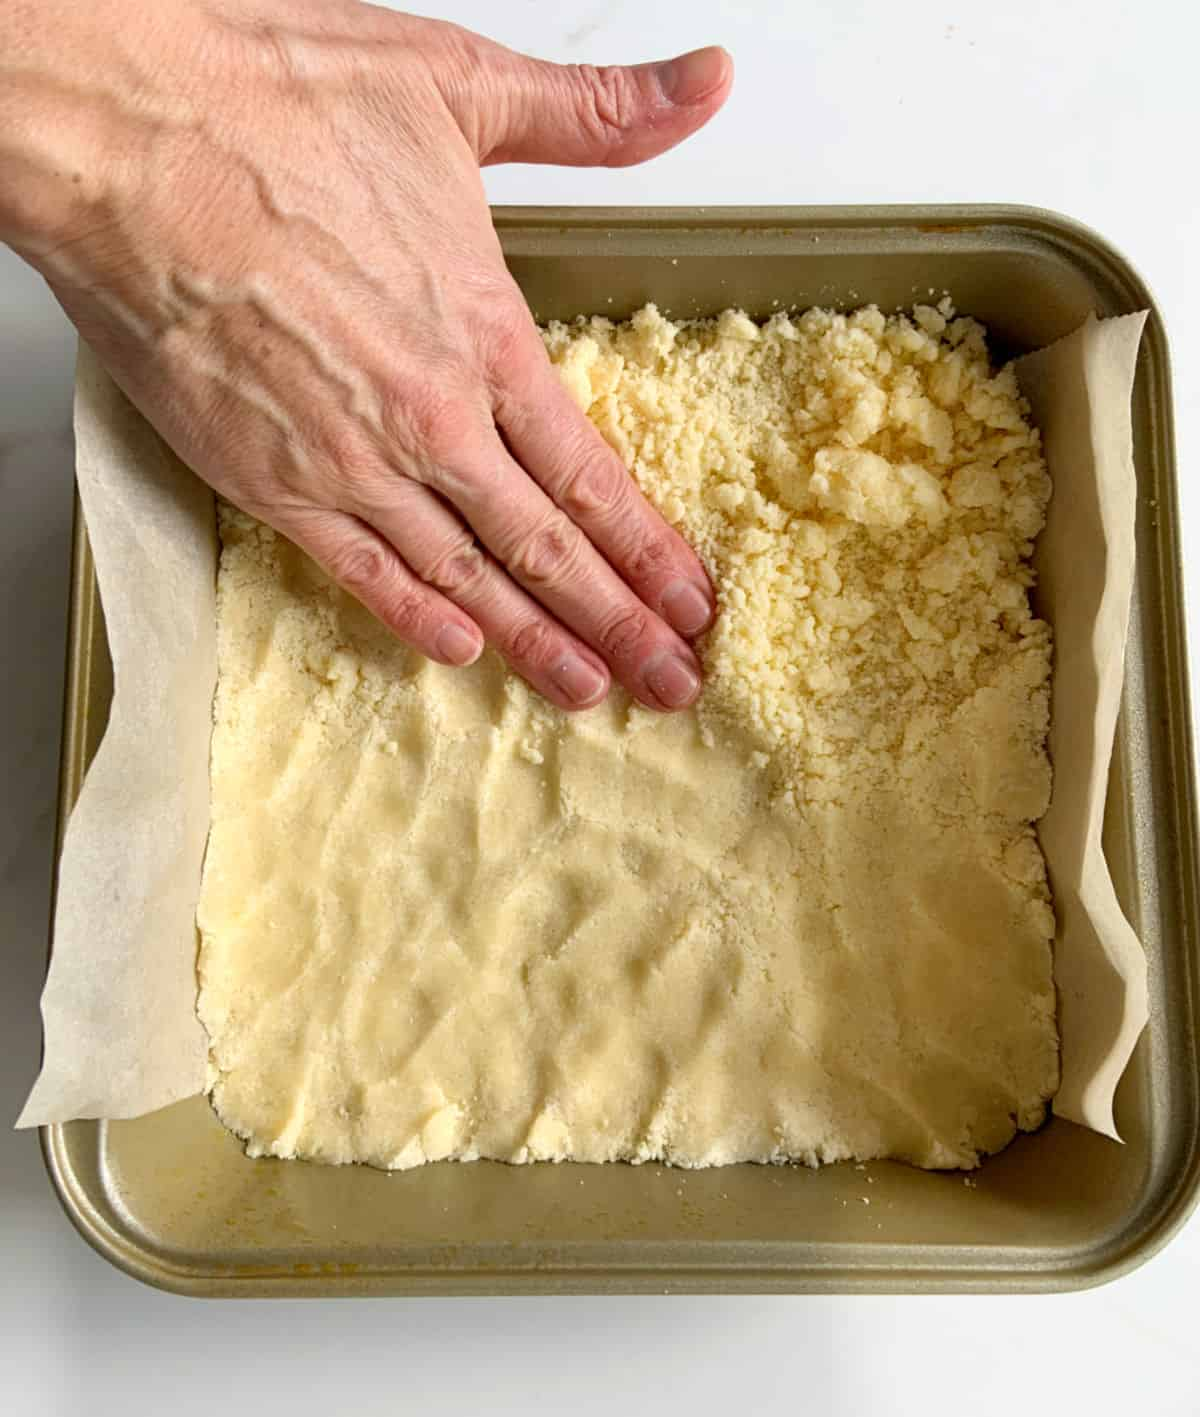 Pressing shortbread dough with hand onto bottom of square pan